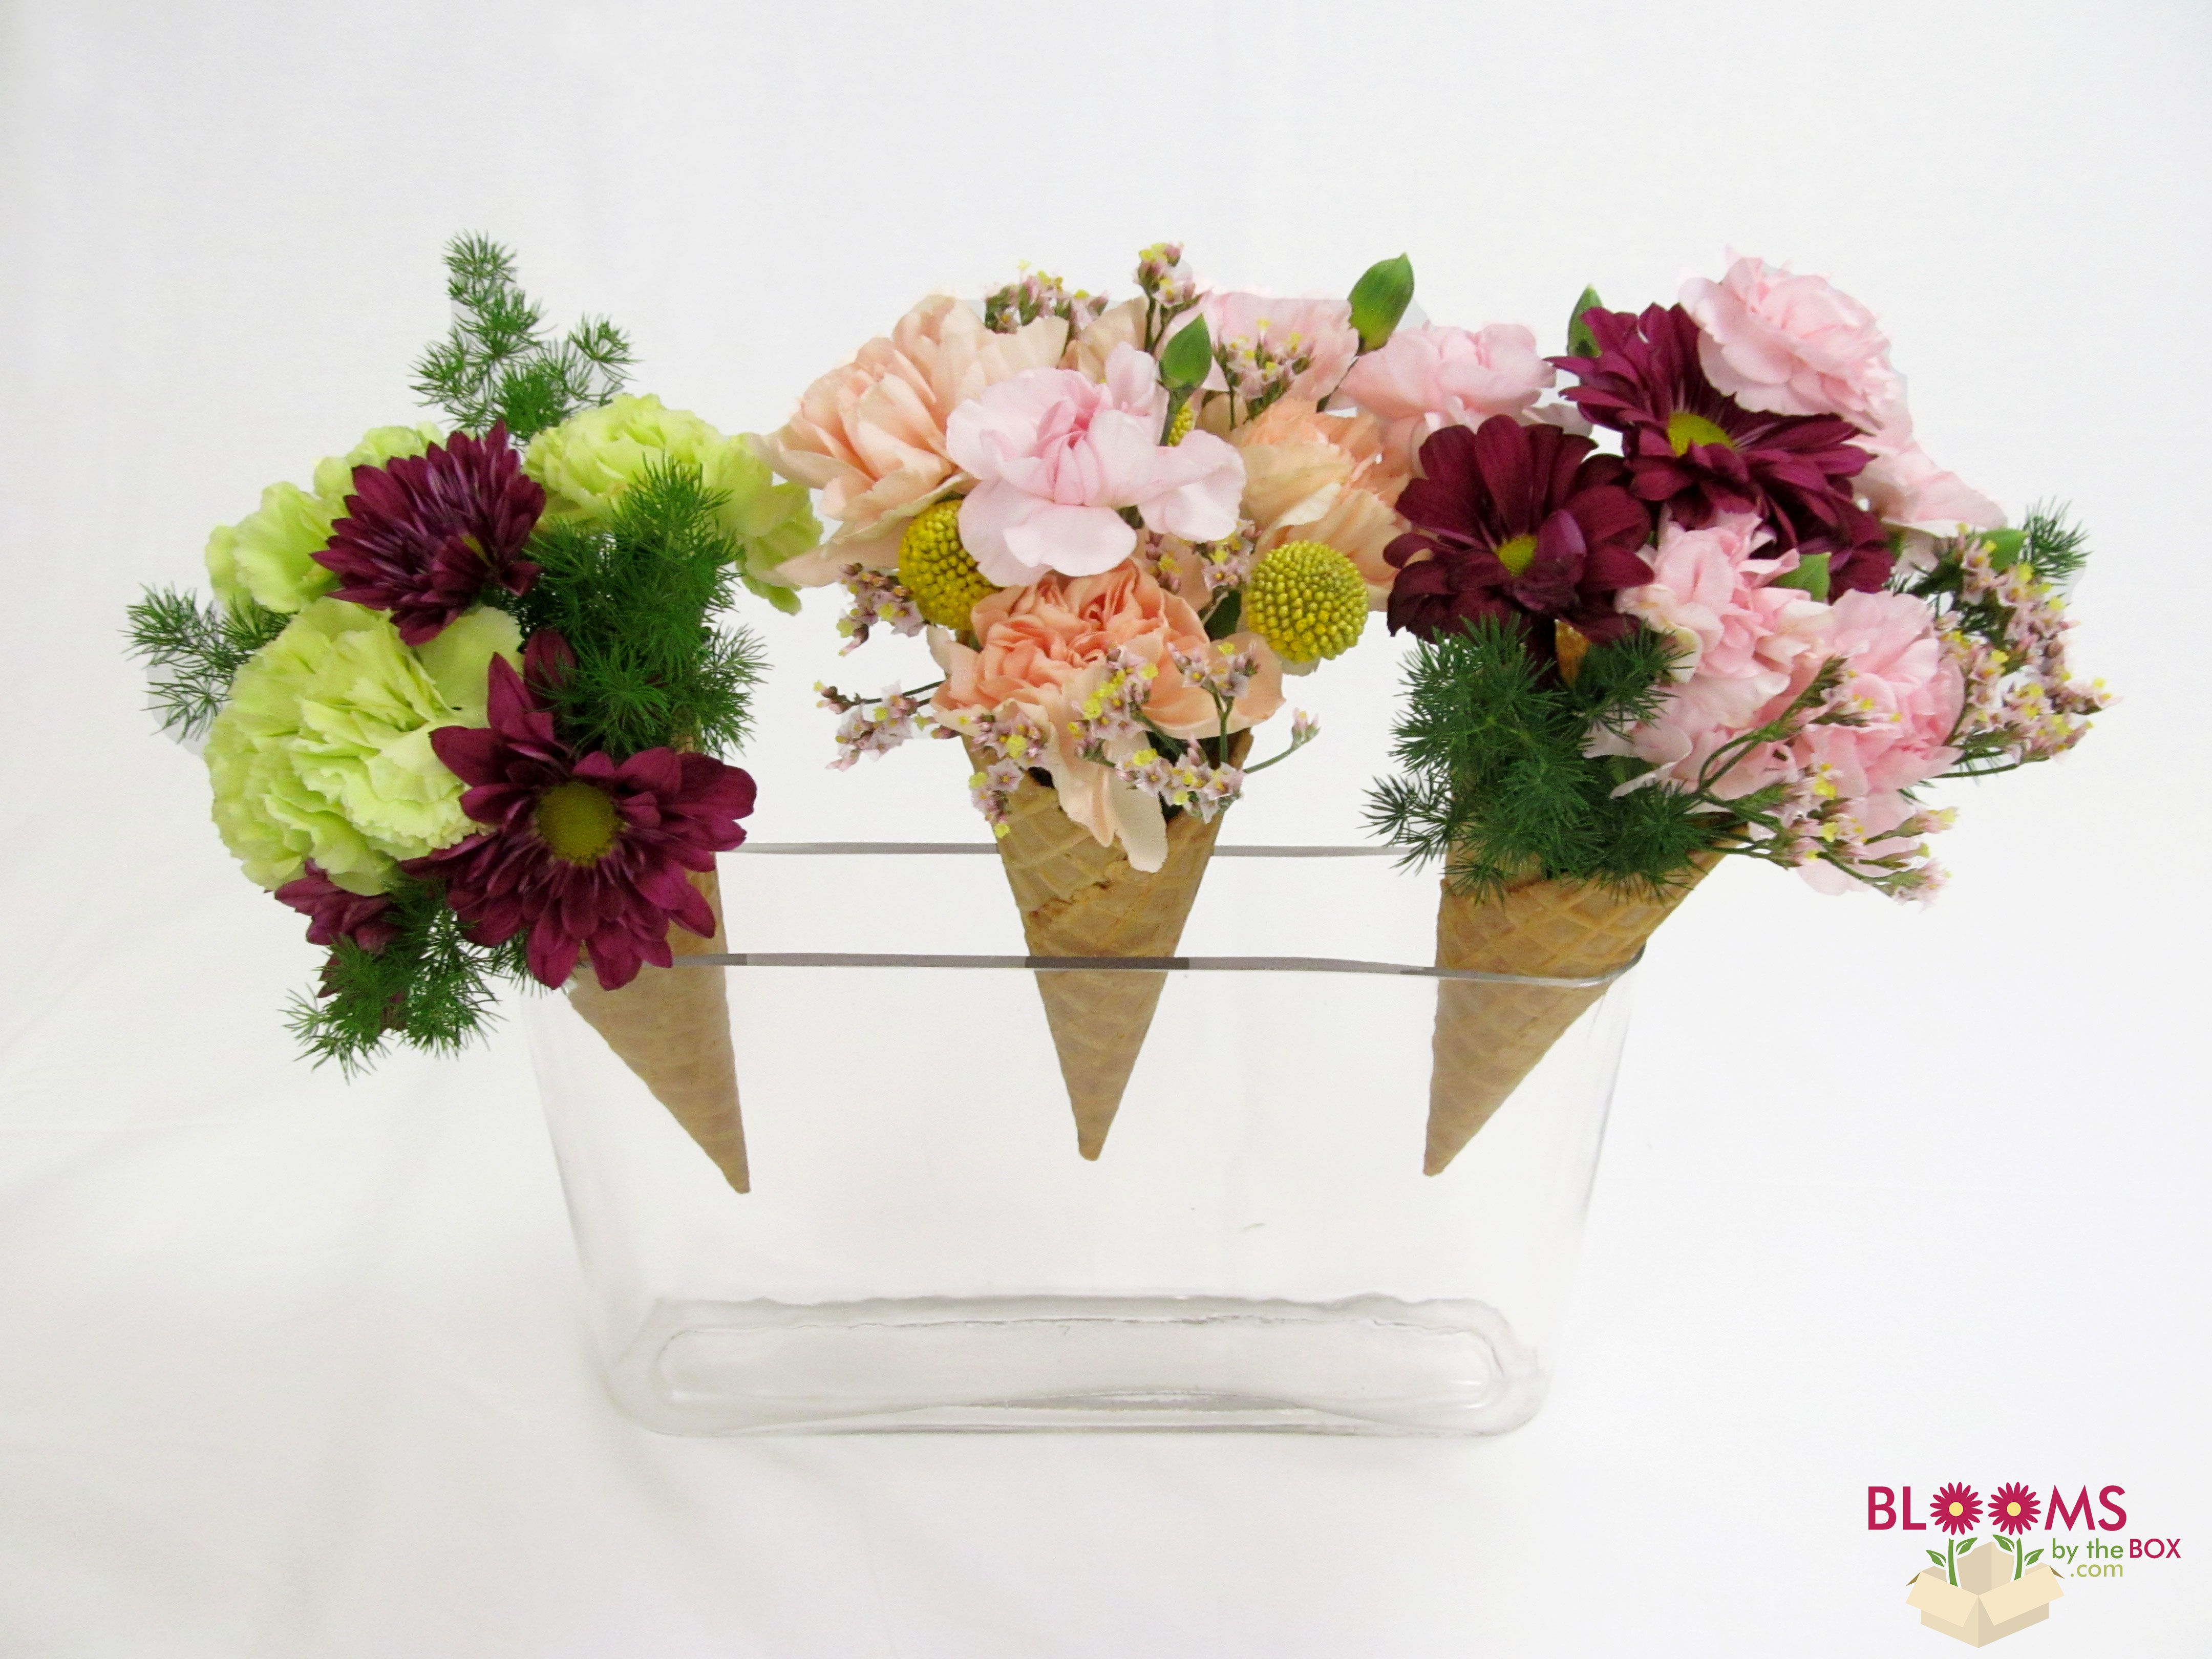 Planning A Bridal Shower Or Birthday Party These Flower Ice Cream Cones Are An Adorable Addition To Any Party And Look Good Flower Cake Floral Ice Flower Ice